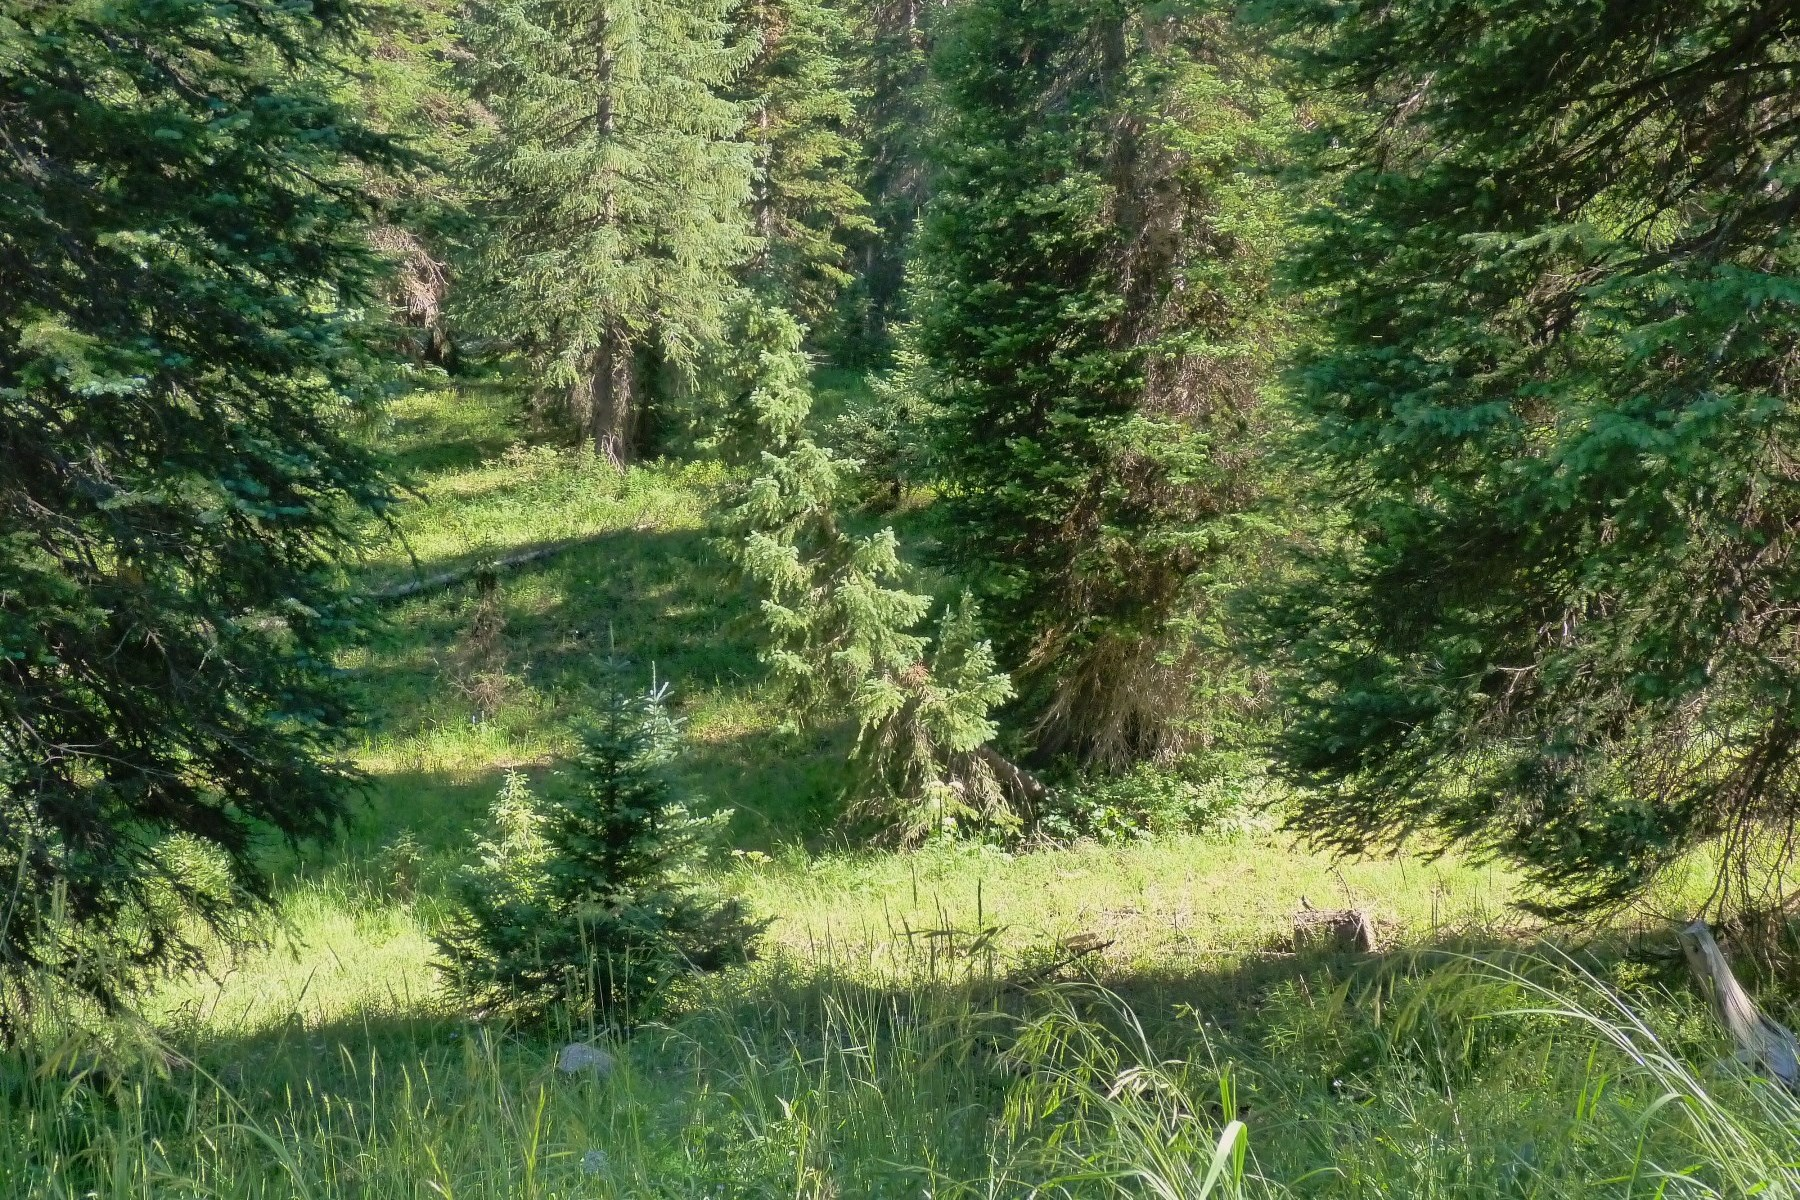 Land for Sale at 2 Acres of Remote Wilderness TBD 7th Street Irwin Crested Butte, Colorado 81224 United States